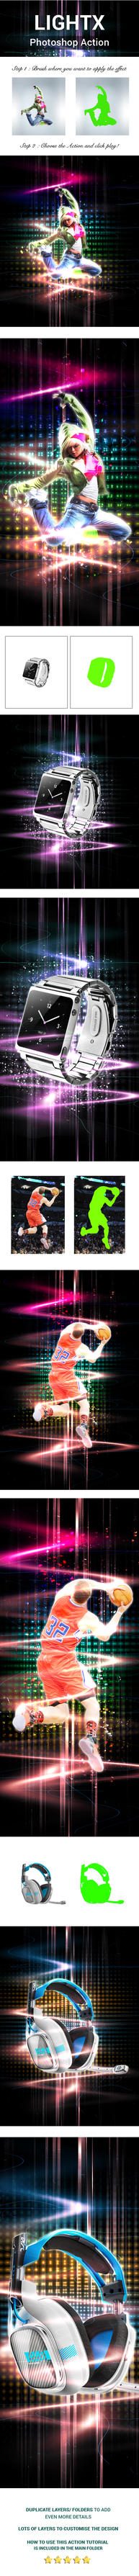 LightX Photoshop Action by yekpix